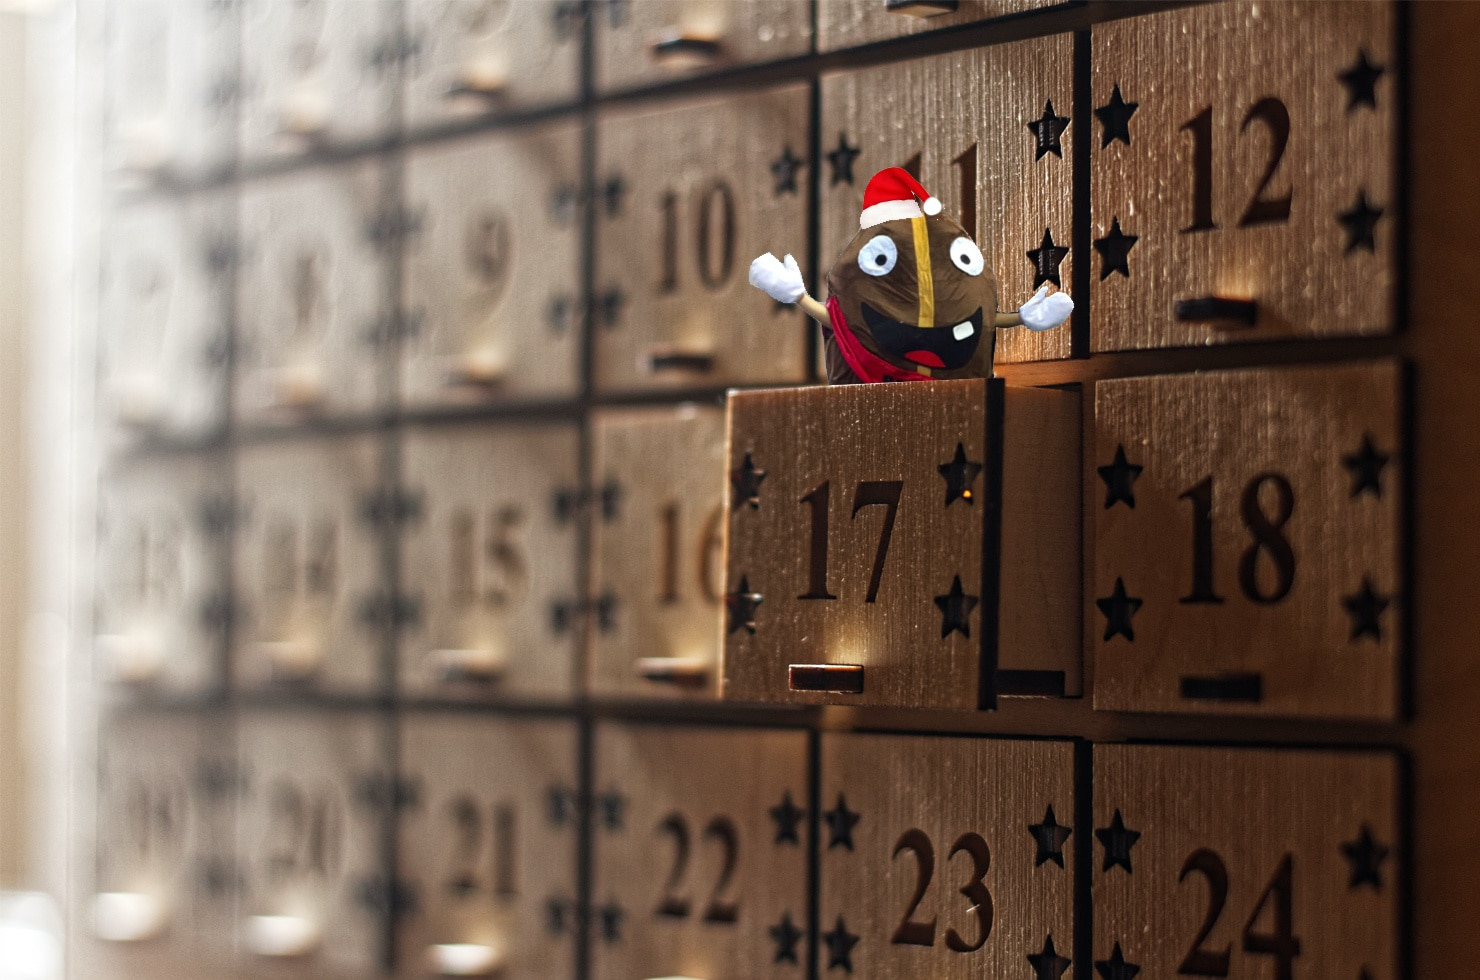 Go On A Coffee Adventure With These Coffee Advent Calendars photo